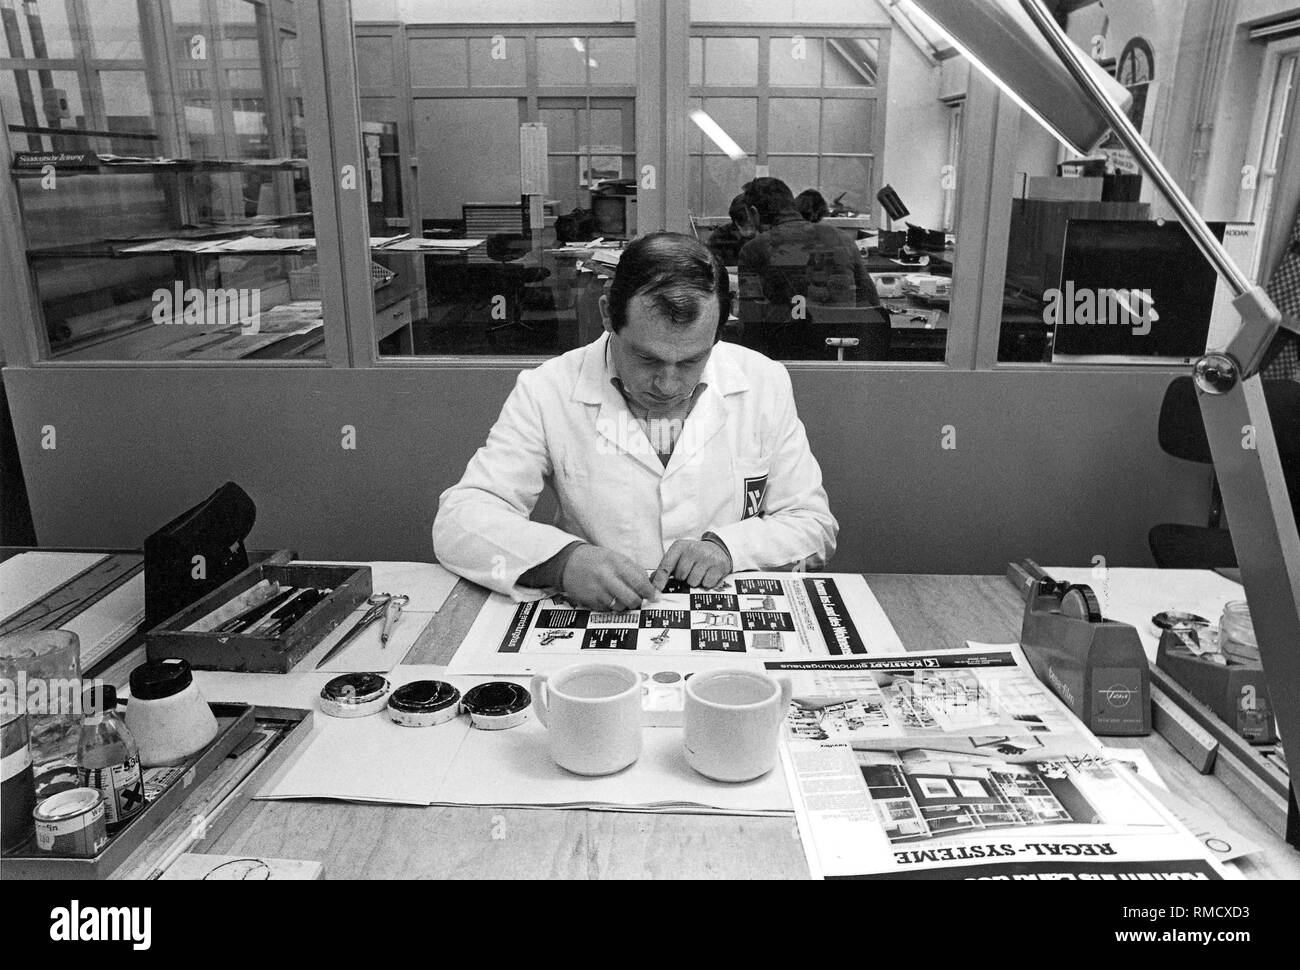 Look into the repro department: man in white coat working on the assembly of a newspaper page. - Stock Image